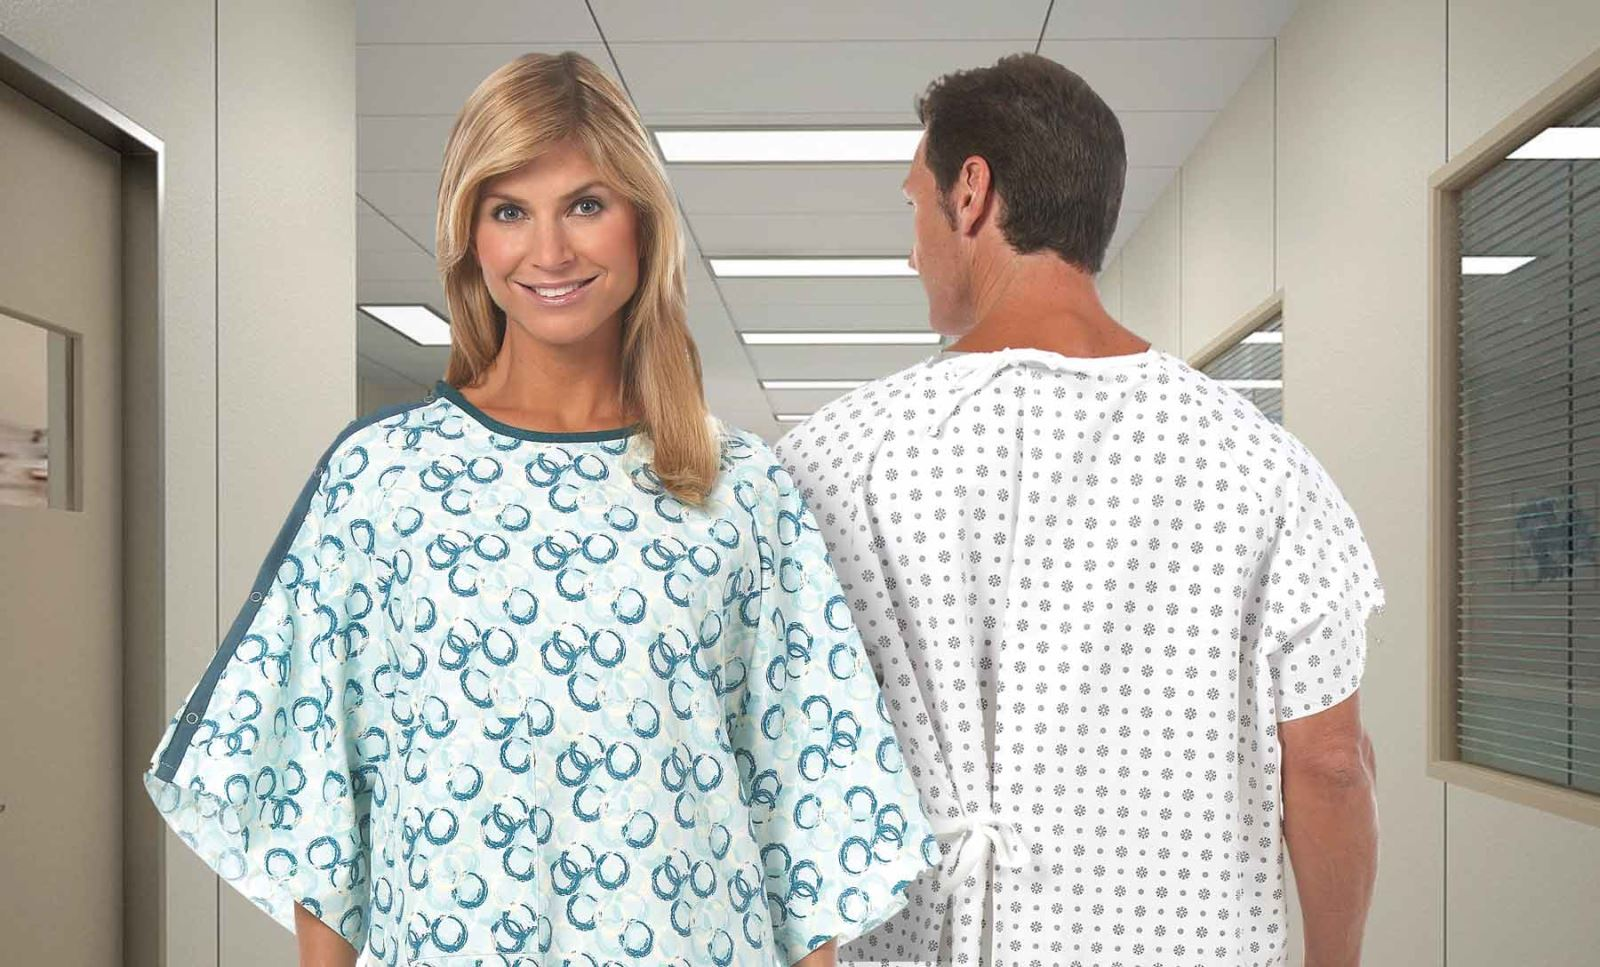 Hospital Gowns Image